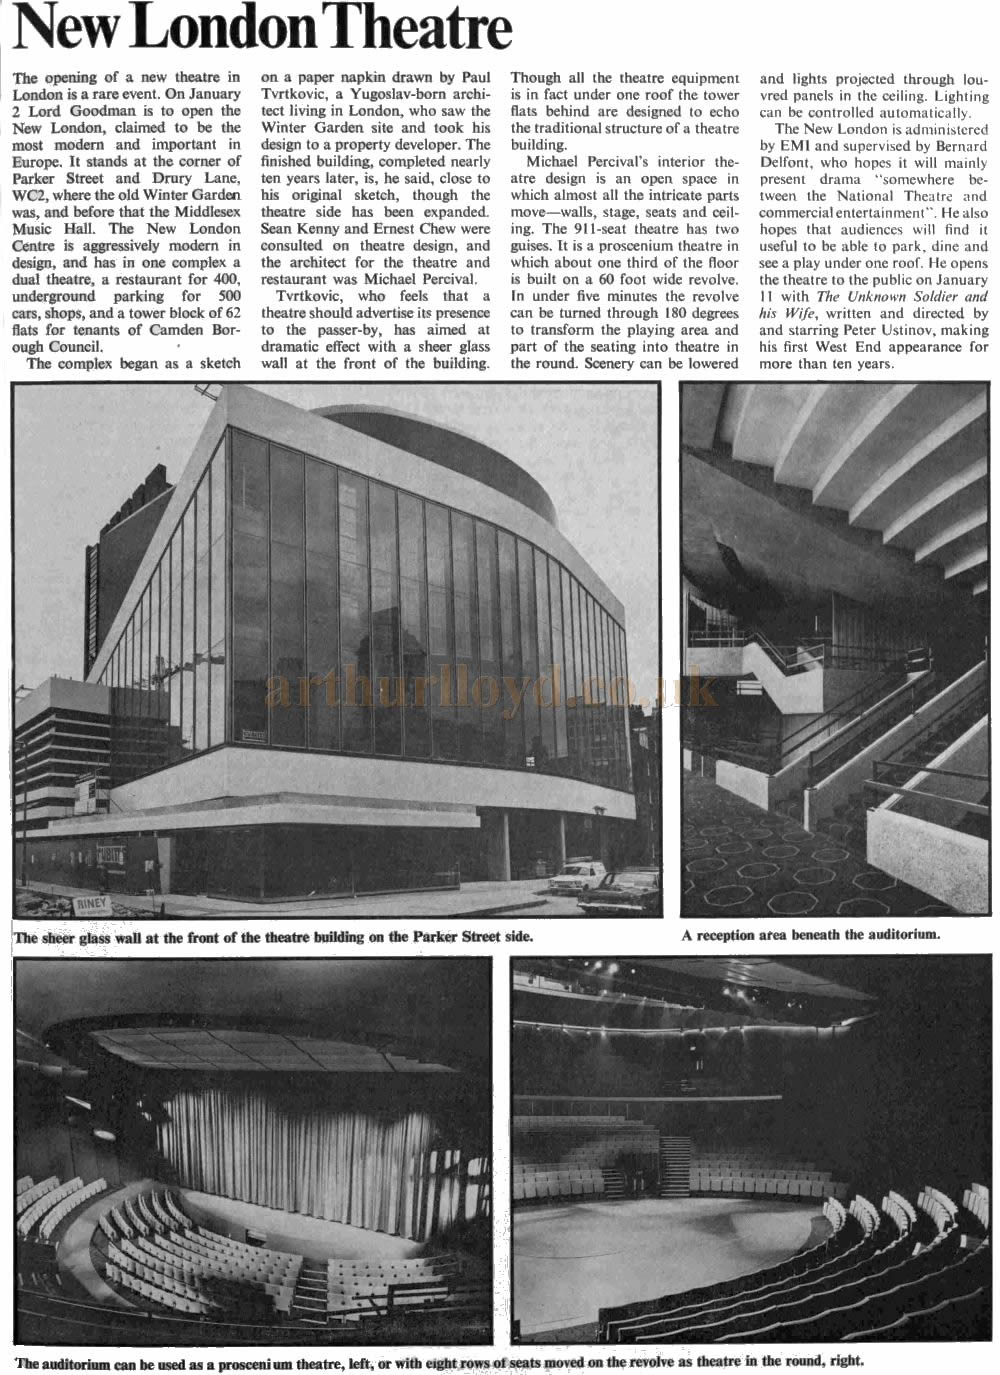 The Illustrated London news reports on the New London Theatre in their 1st of January 1973 edition.